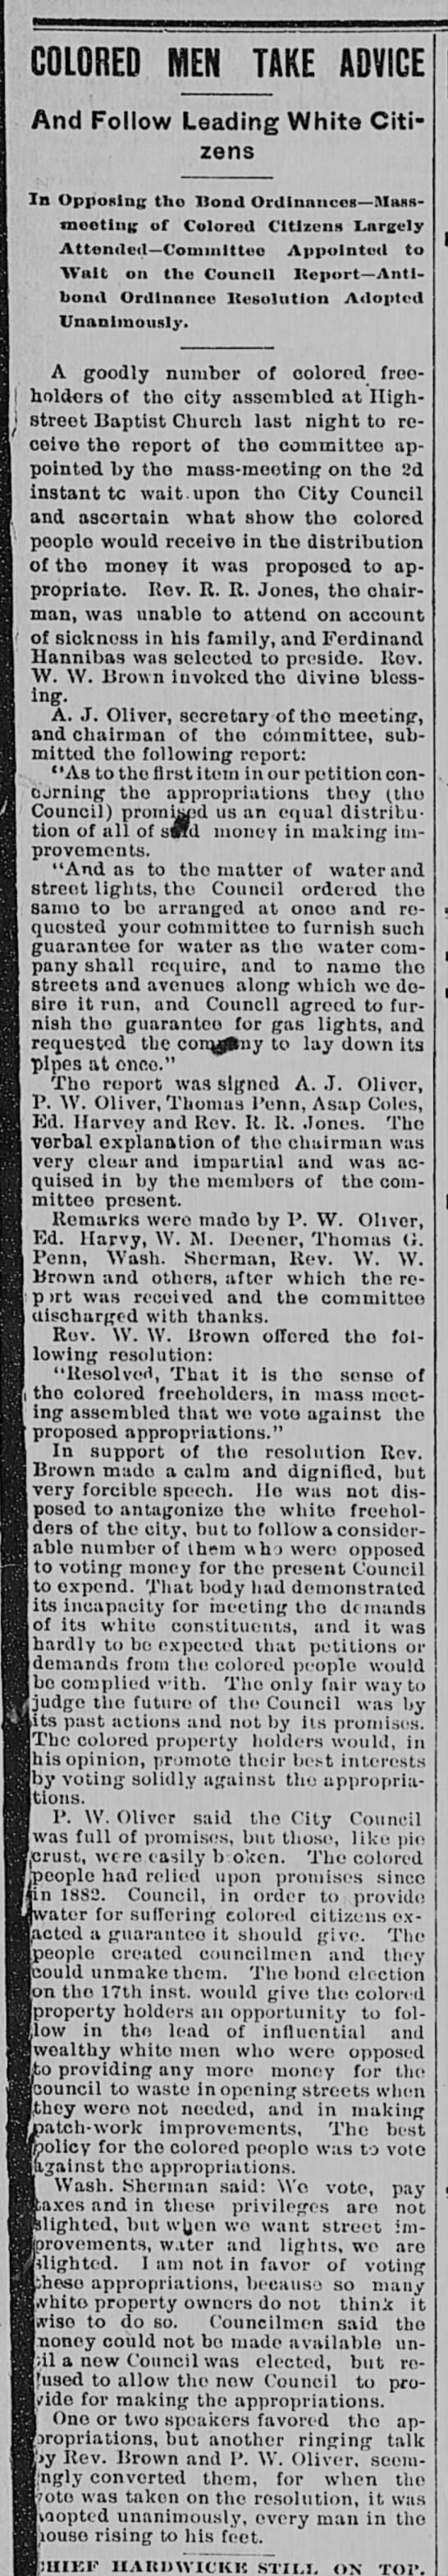 Patrick Oliver on bond issue, why against bond resolution, 1891 -